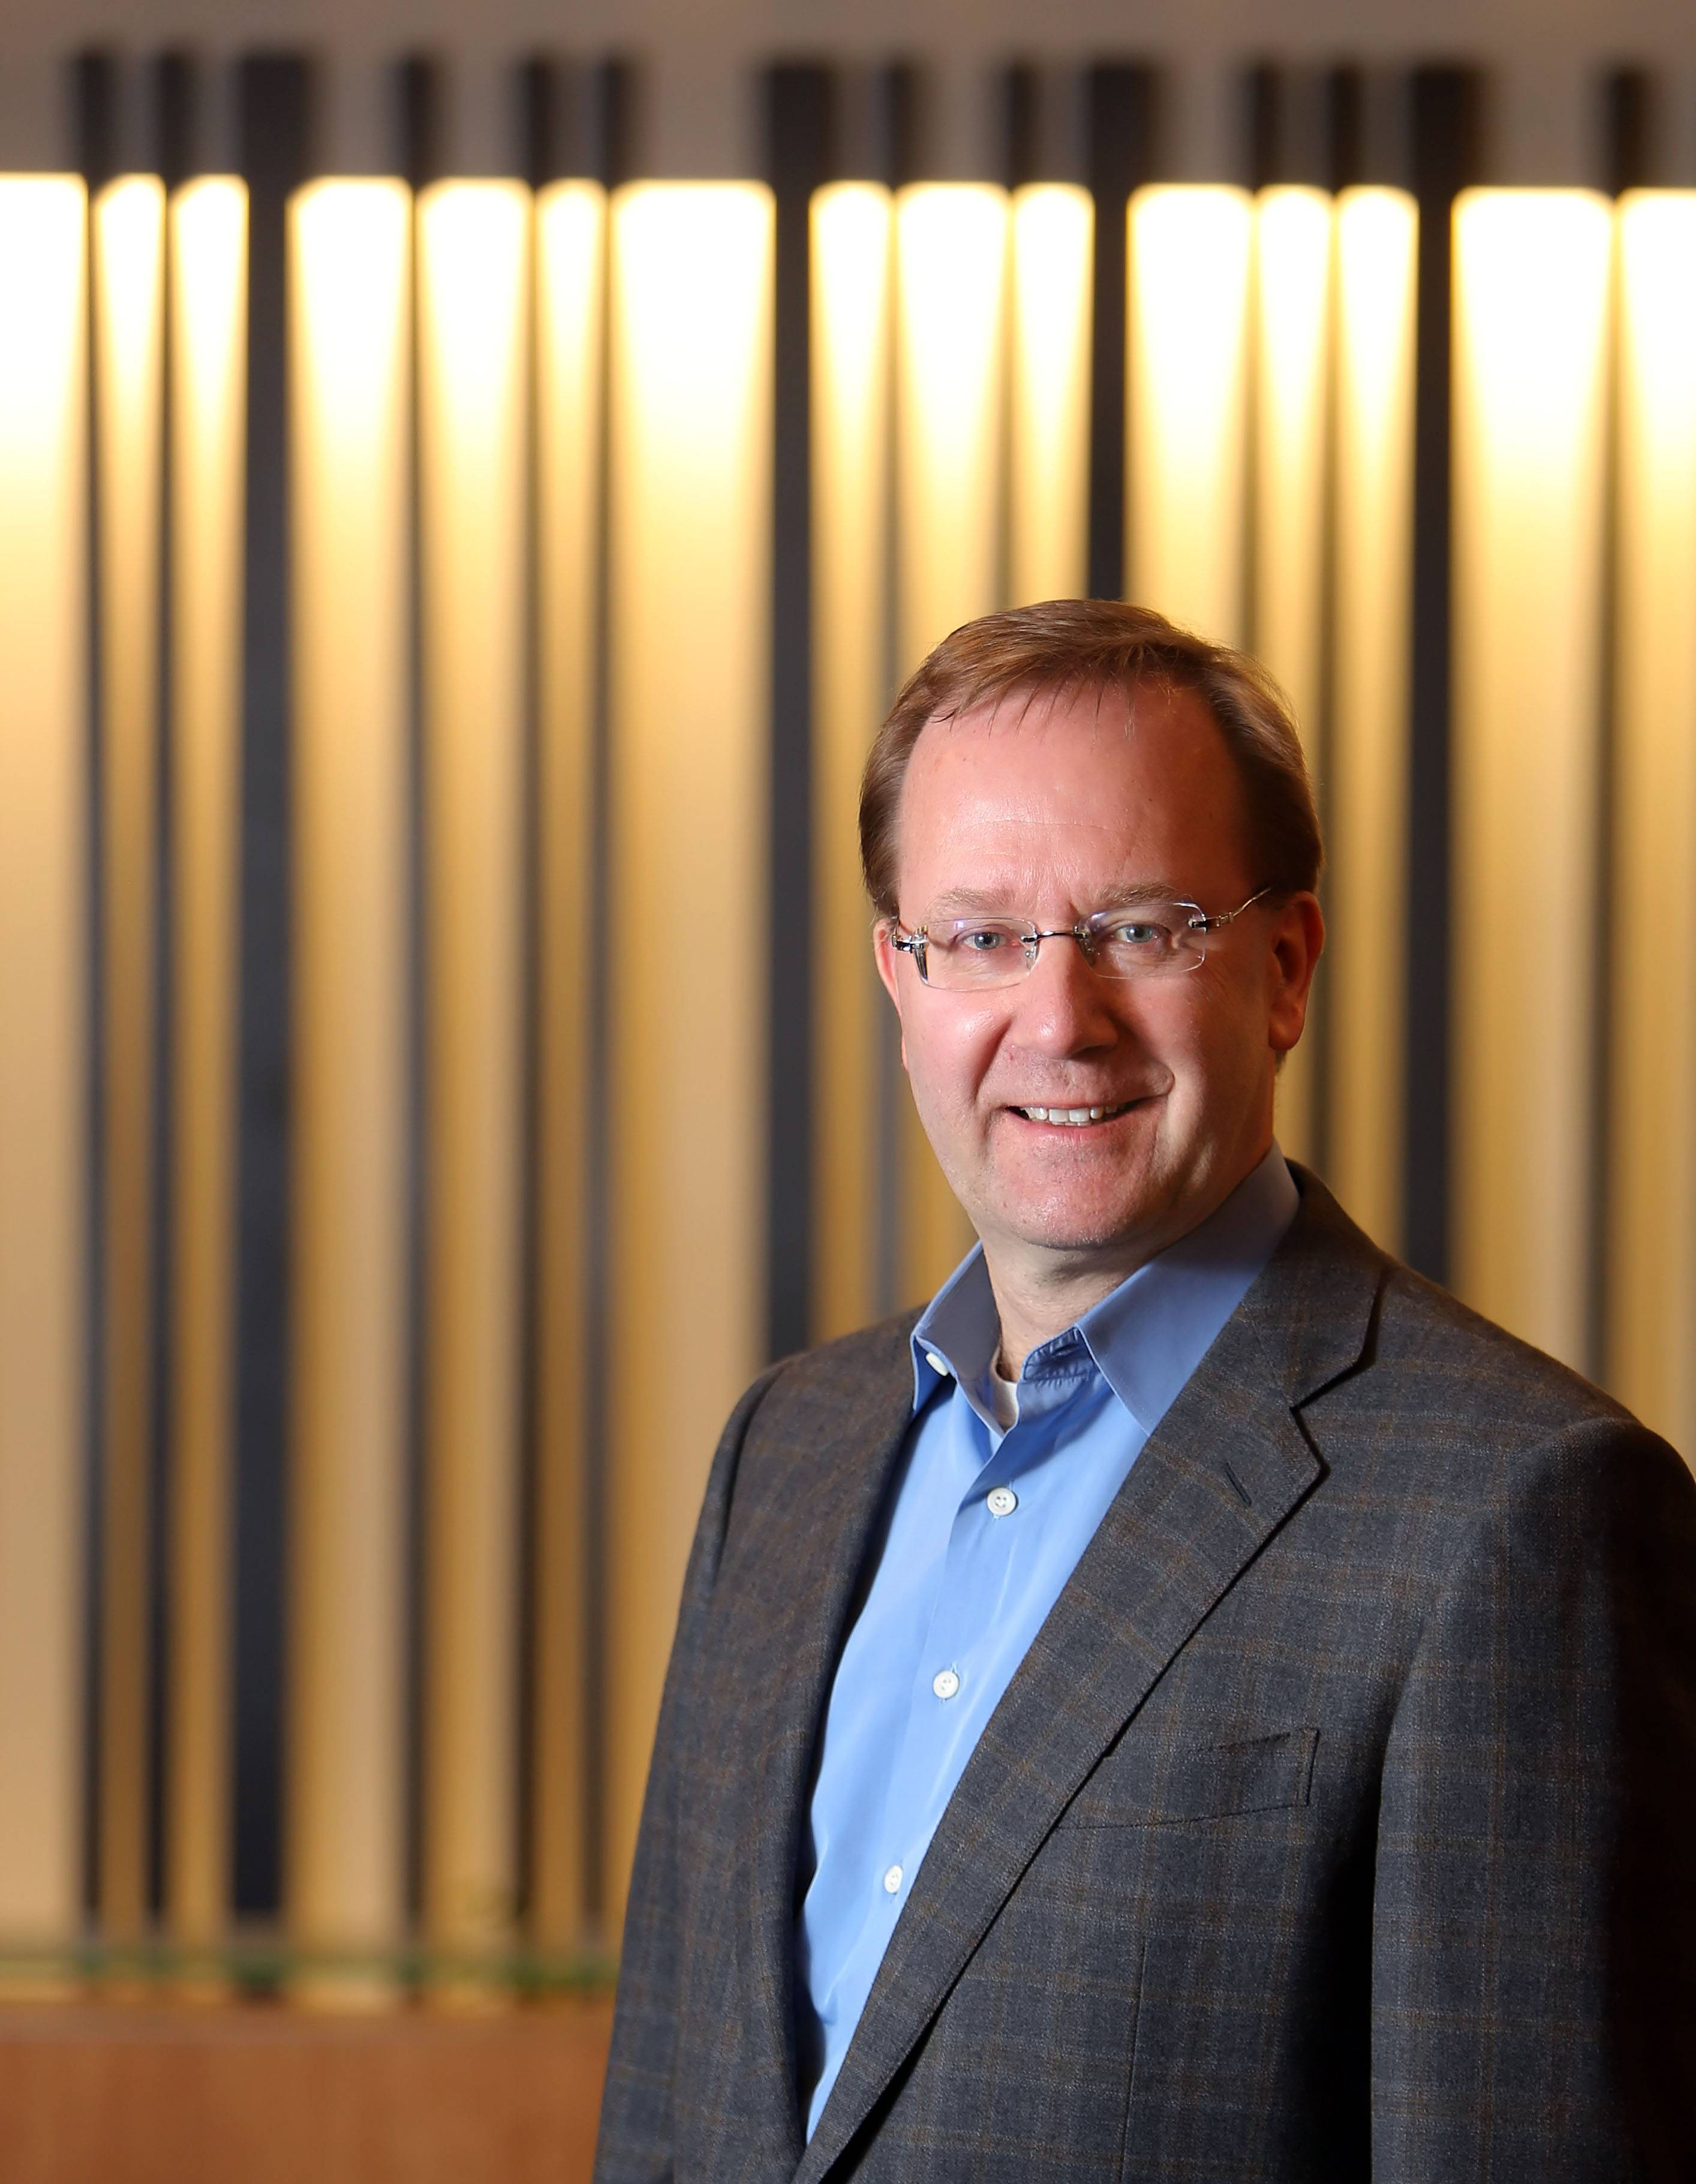 Anders Gustafsson, CEO of Zebra Technologies in Lincolnshire.